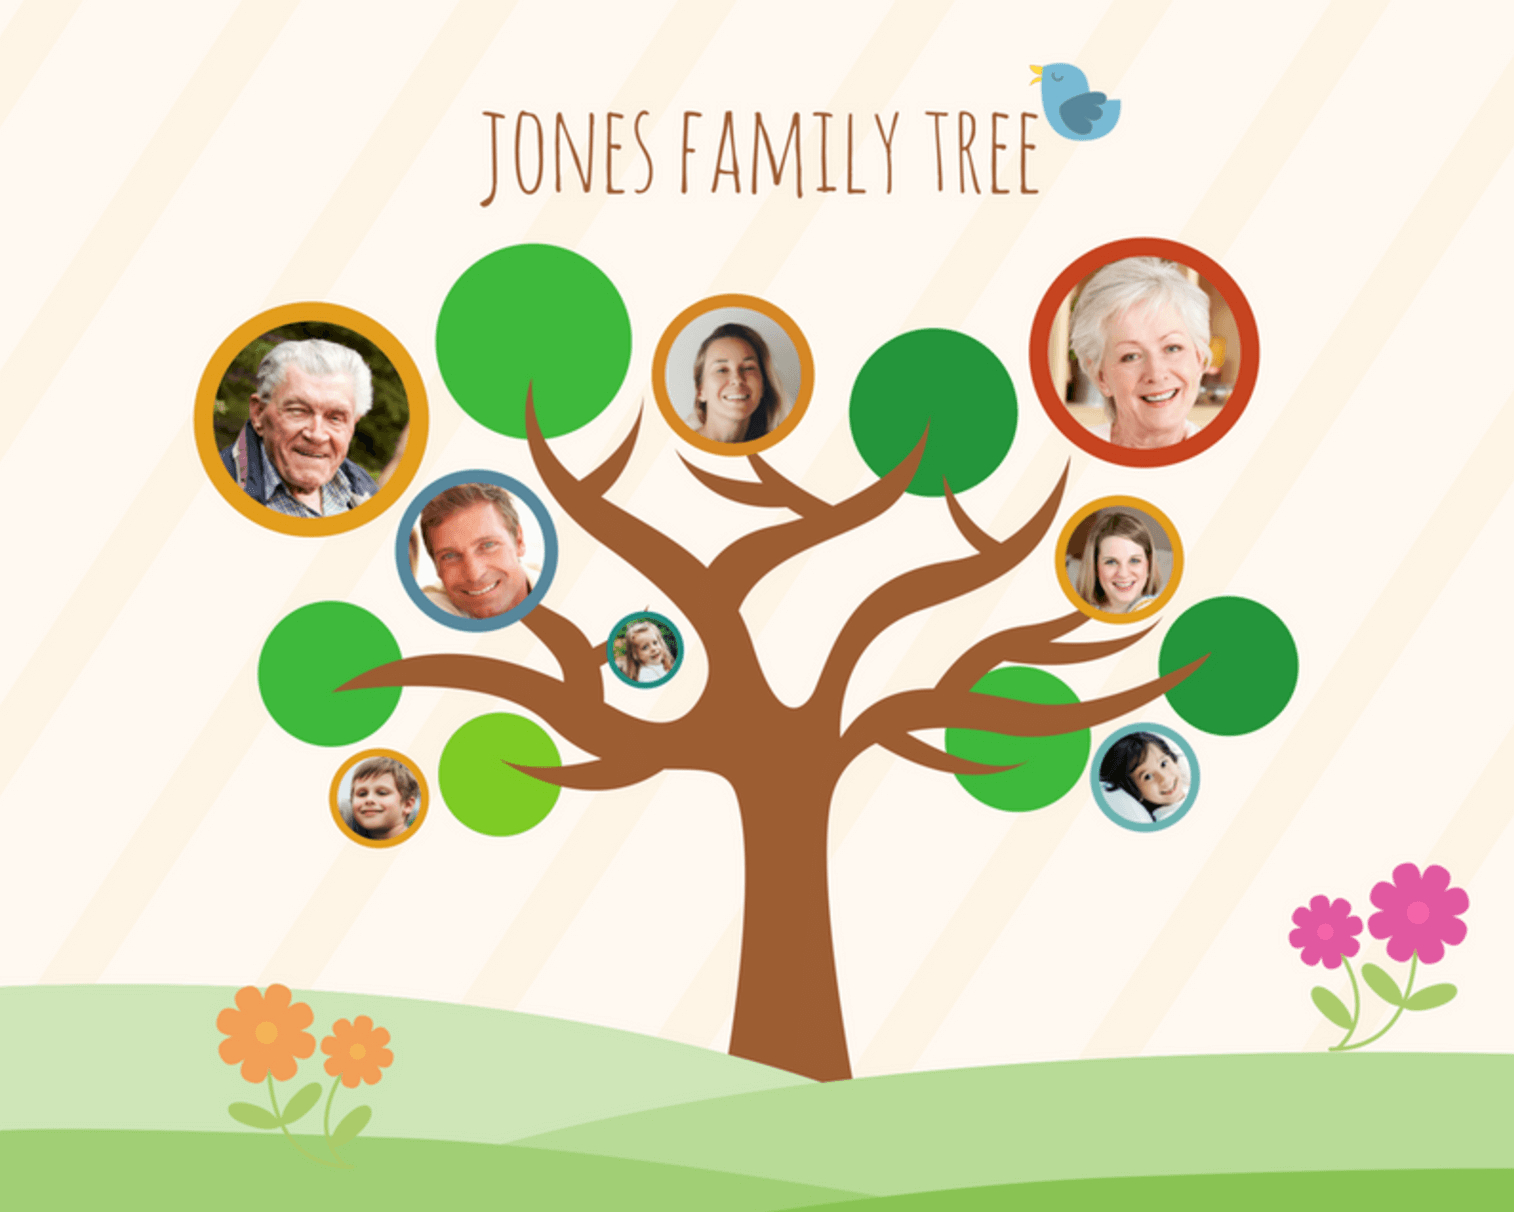 Free Online Family Tree Maker: Design A Custom Family Tree - Canva - Family Tree Maker Online Free Printable